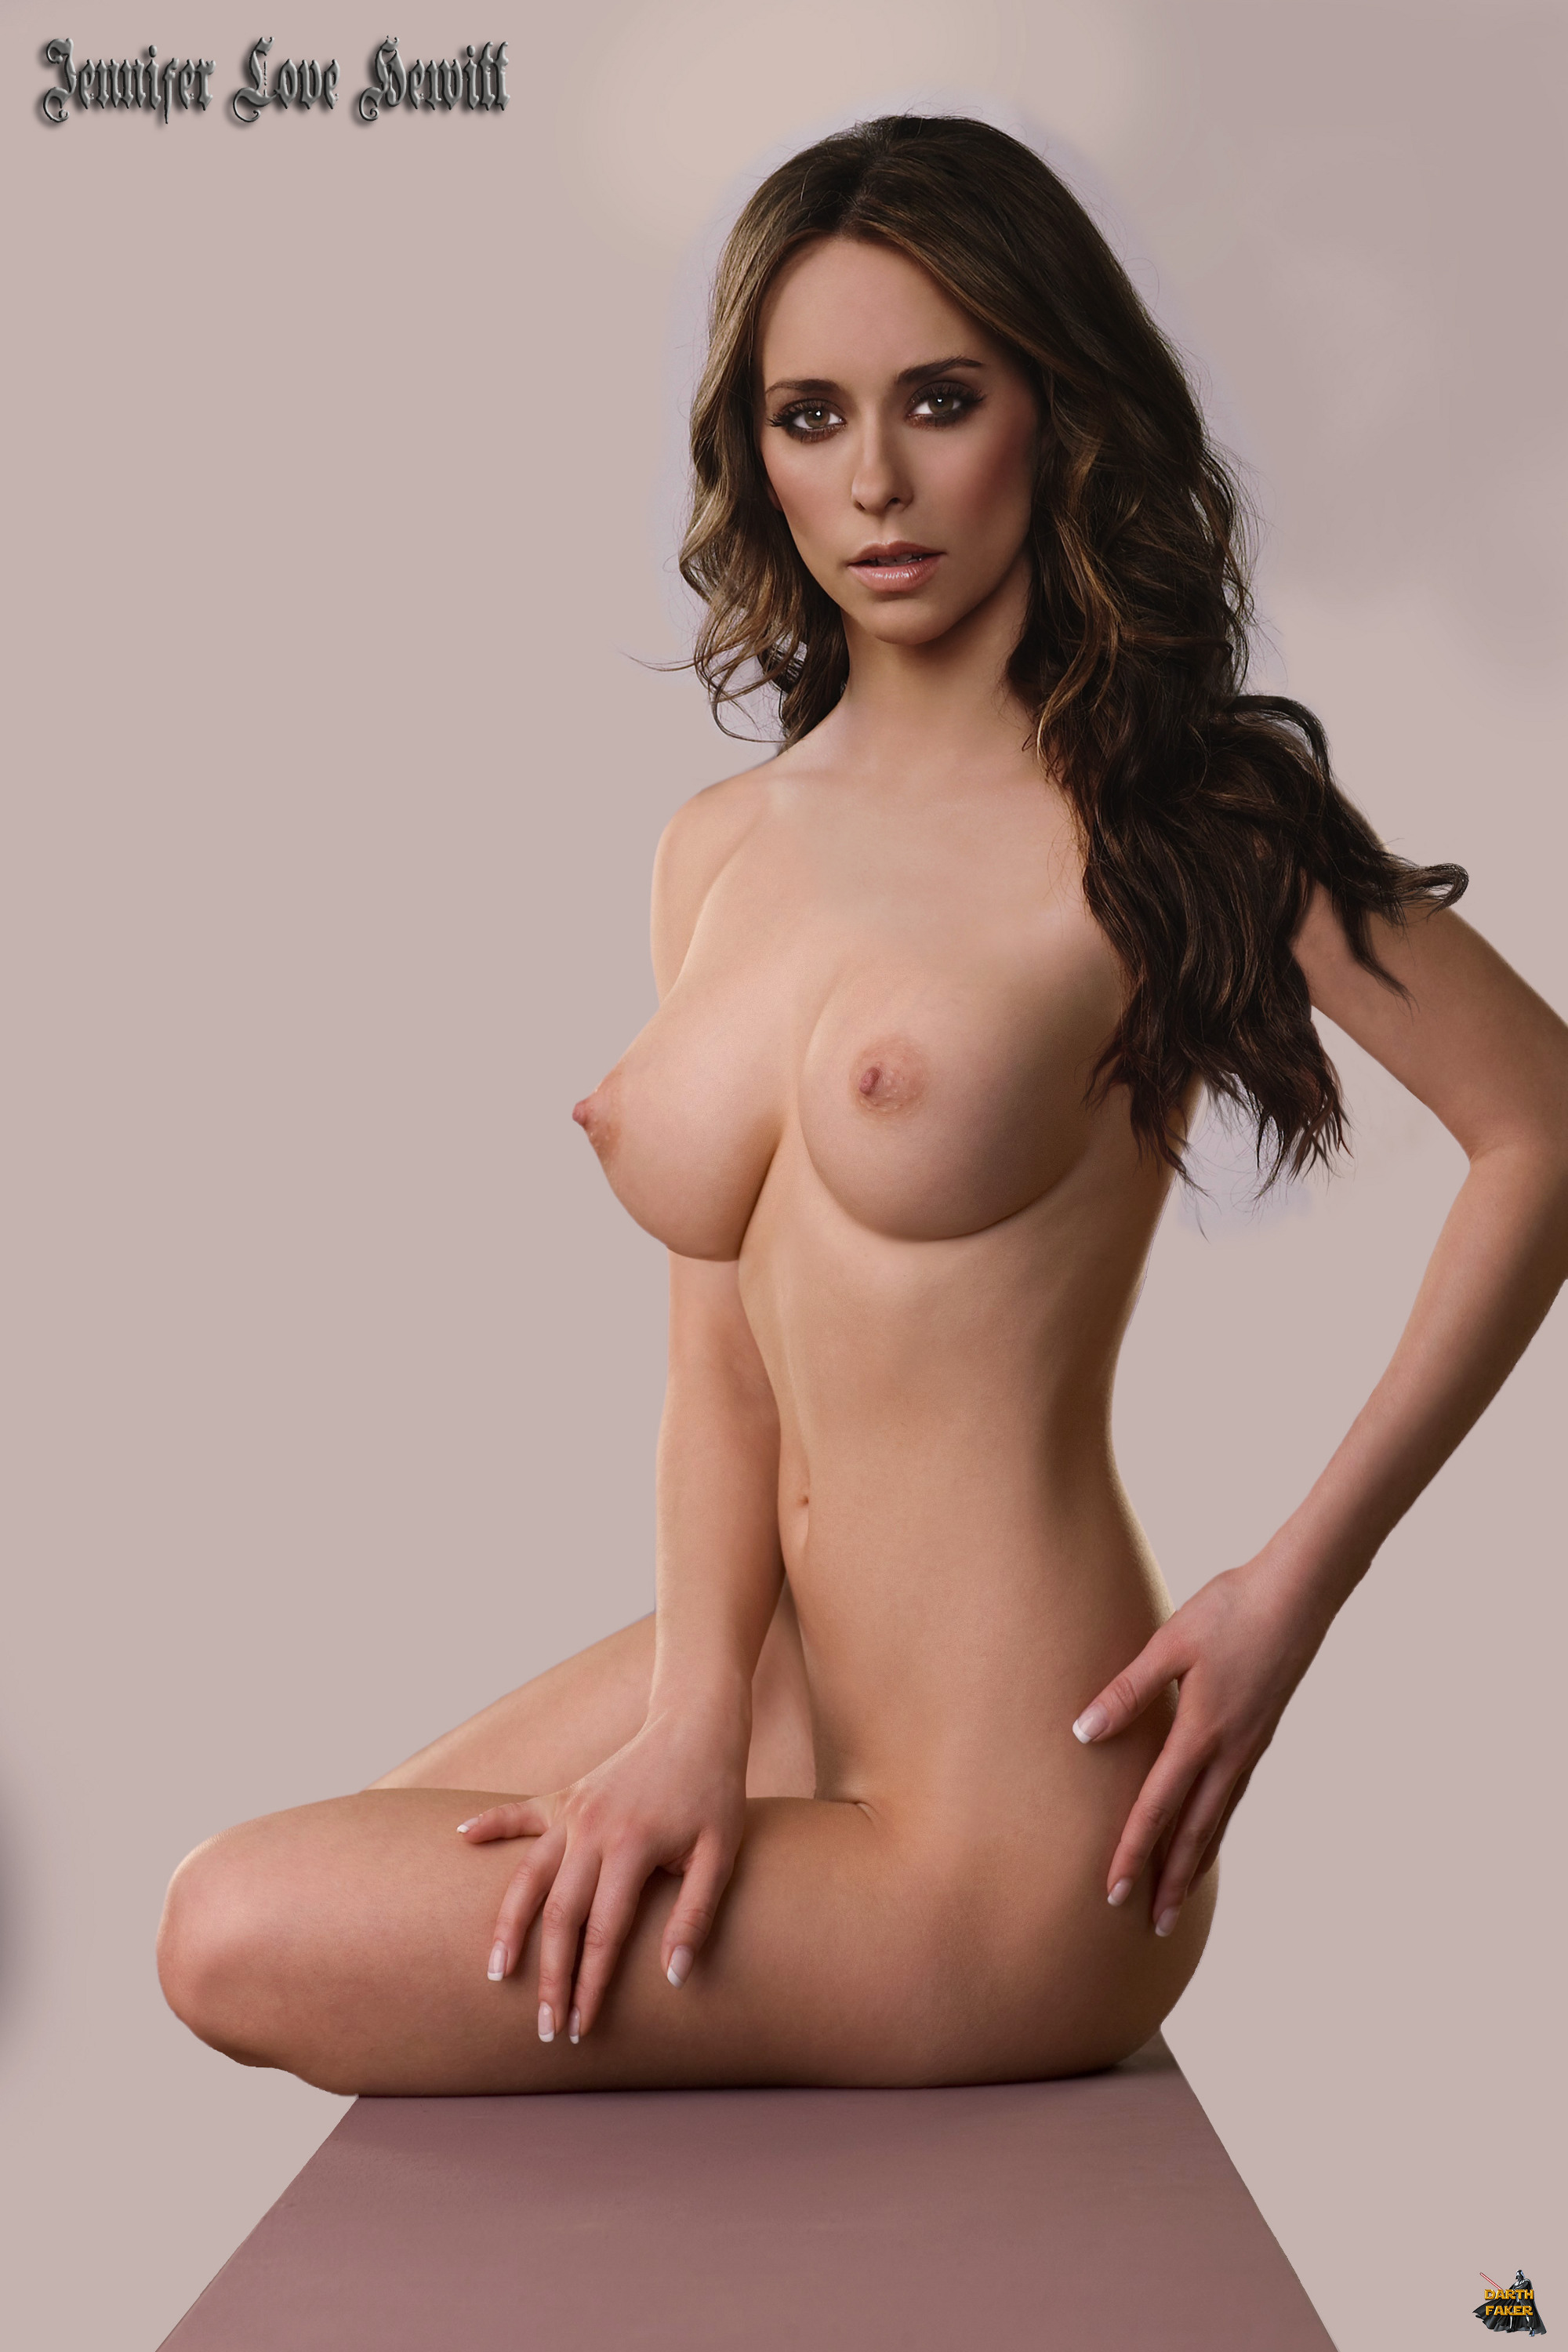 Jennifer Love Hewitt Showing Her Tits And More